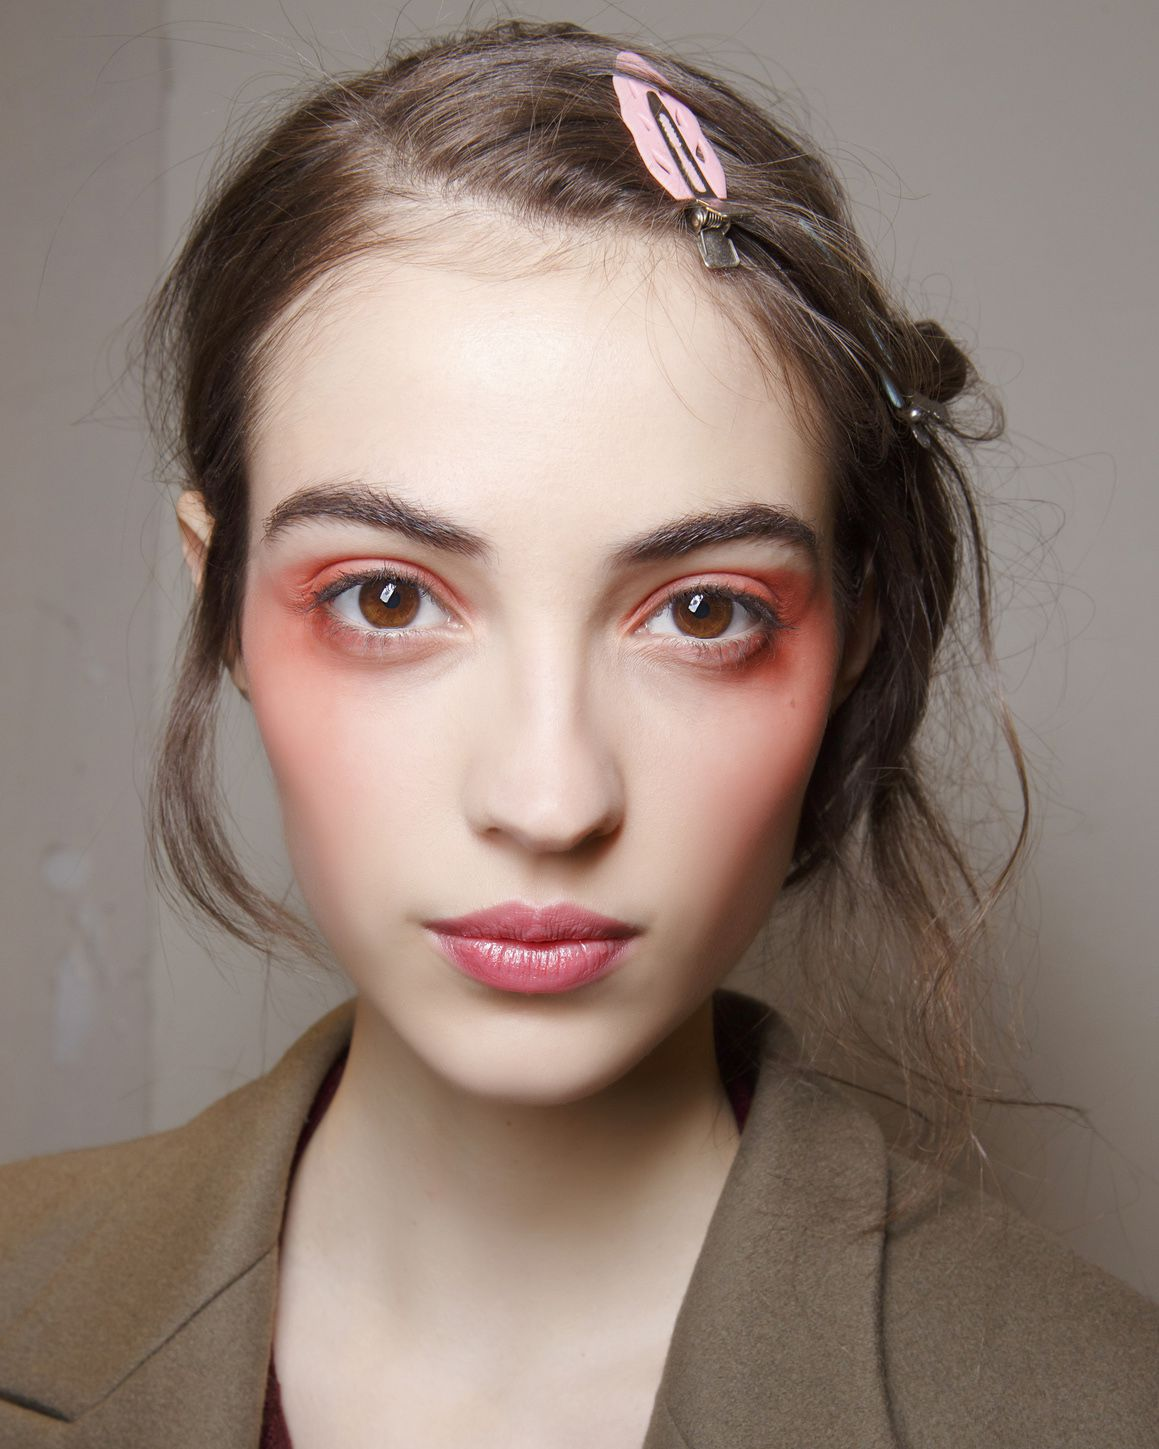 Wedding Makeup - Best Wedding Make-Up Looks For The Big Day